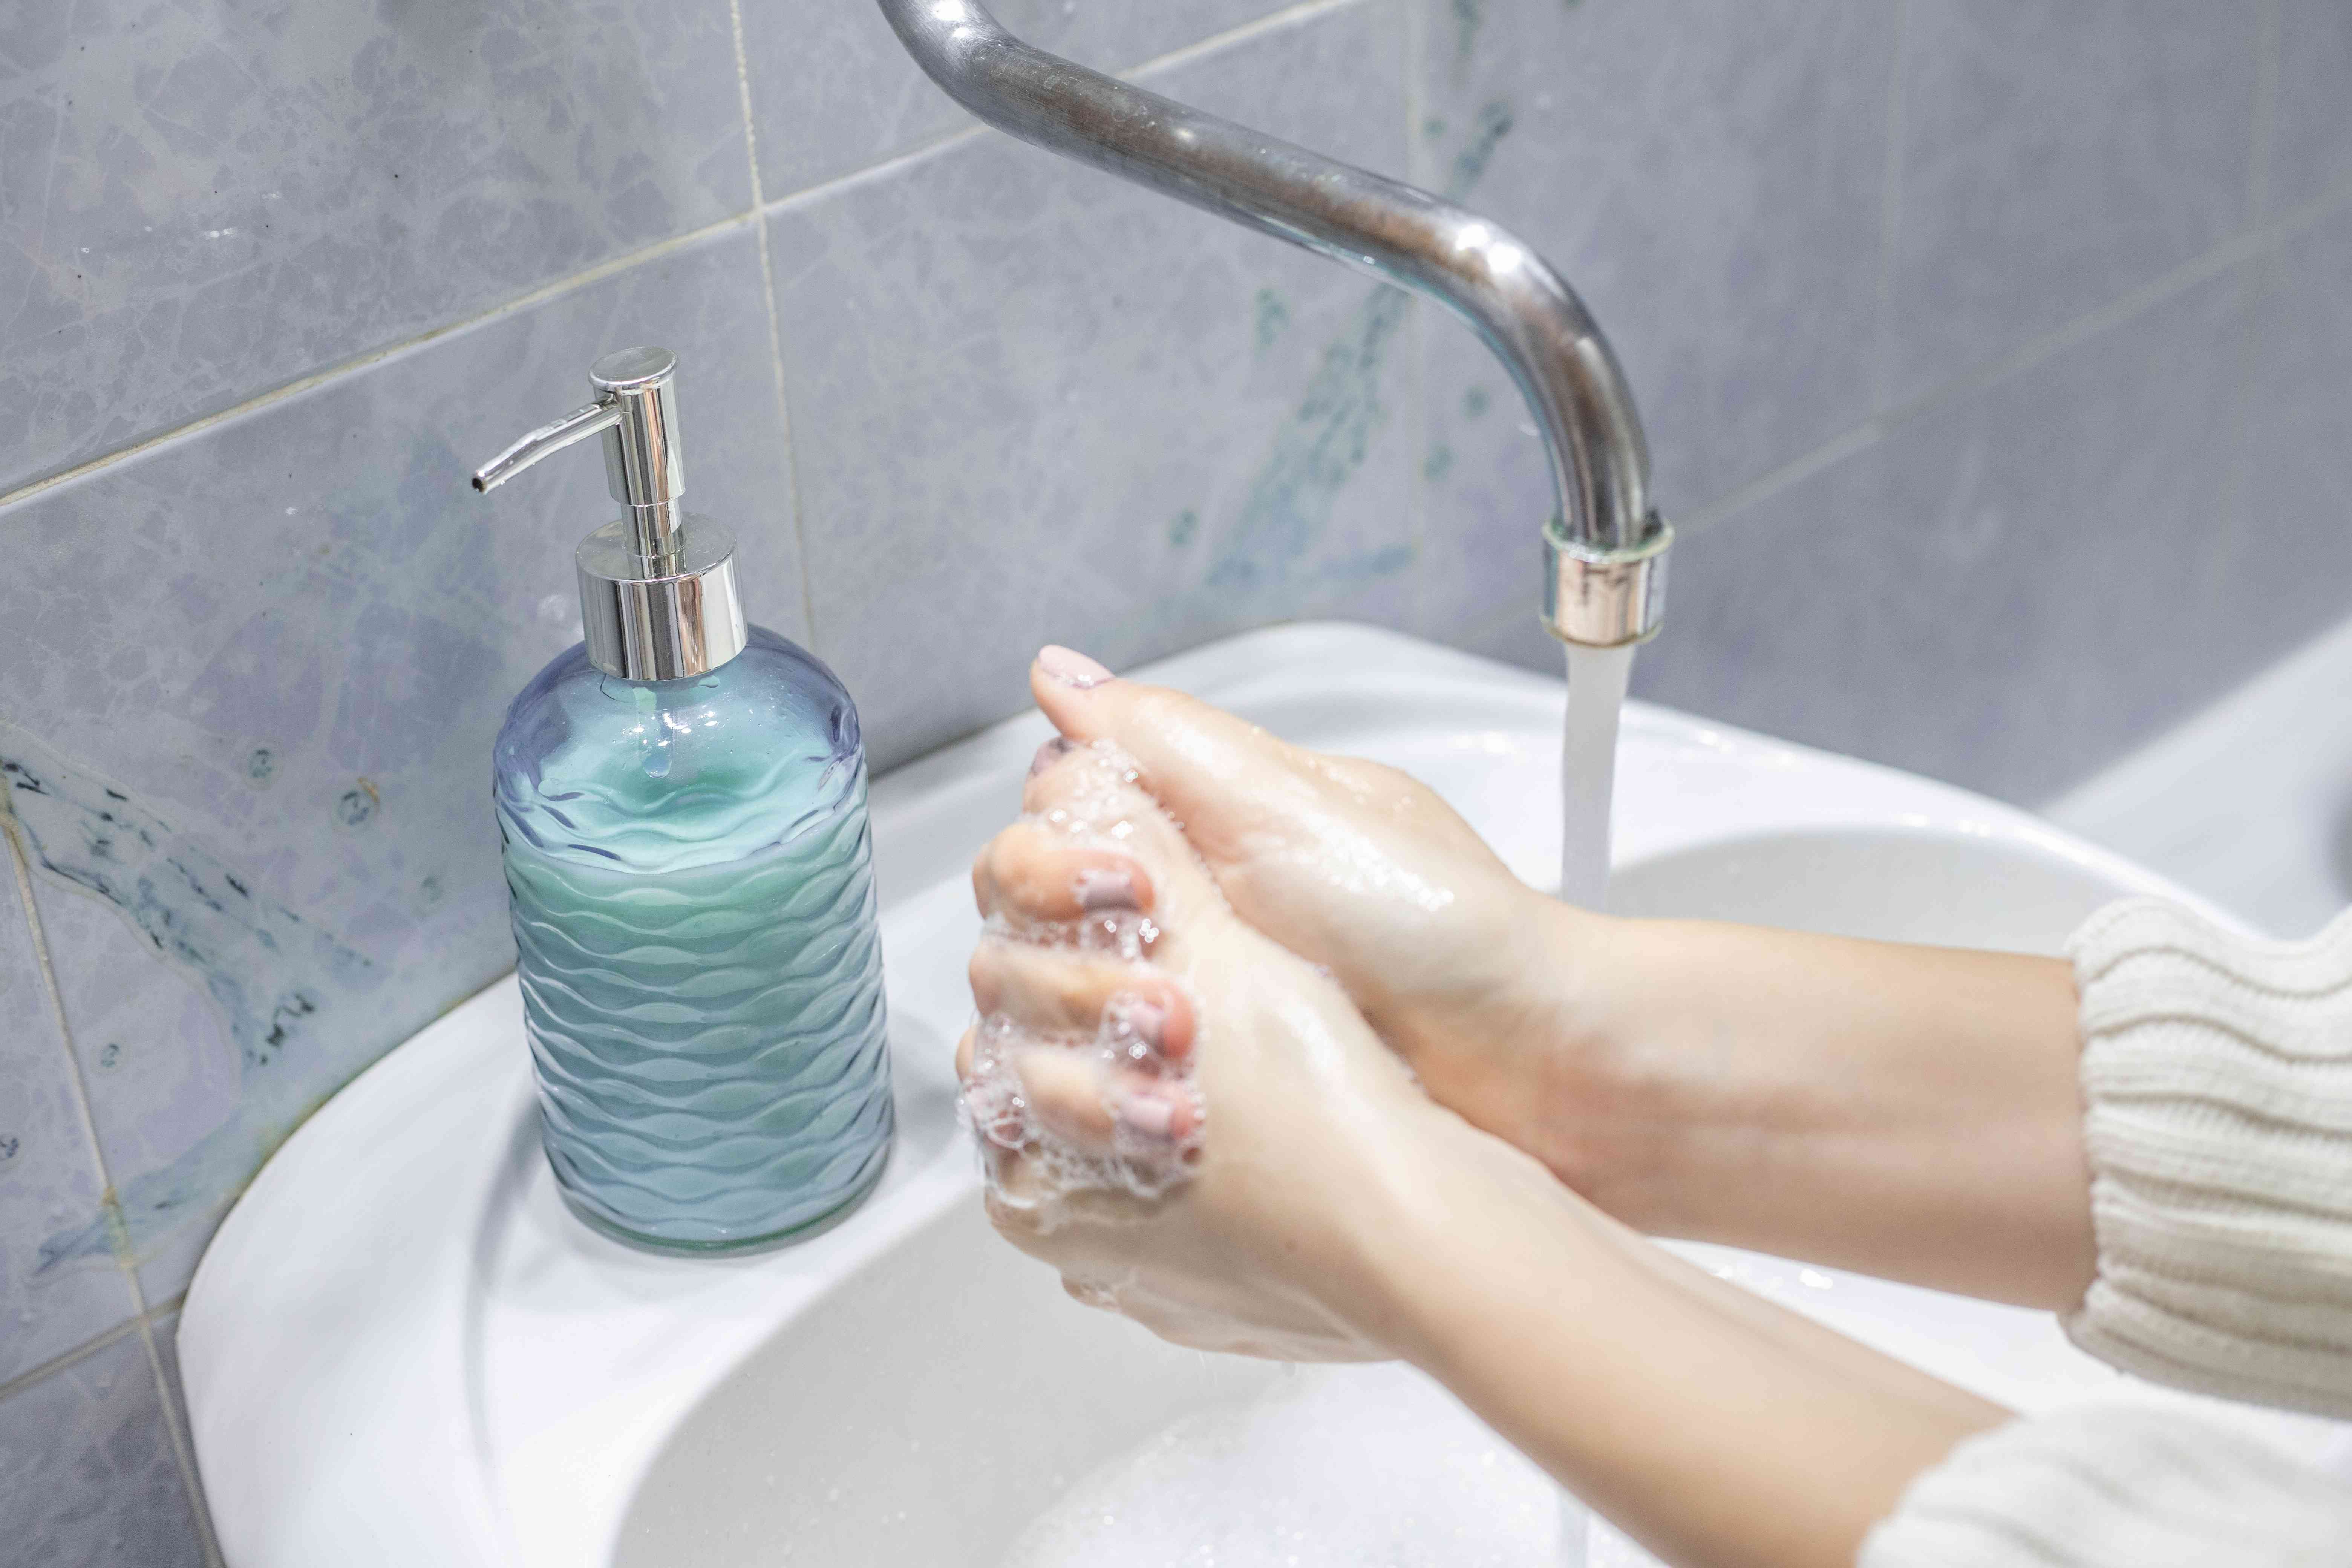 person in sweater washes hands with refillable glass bottle in sink